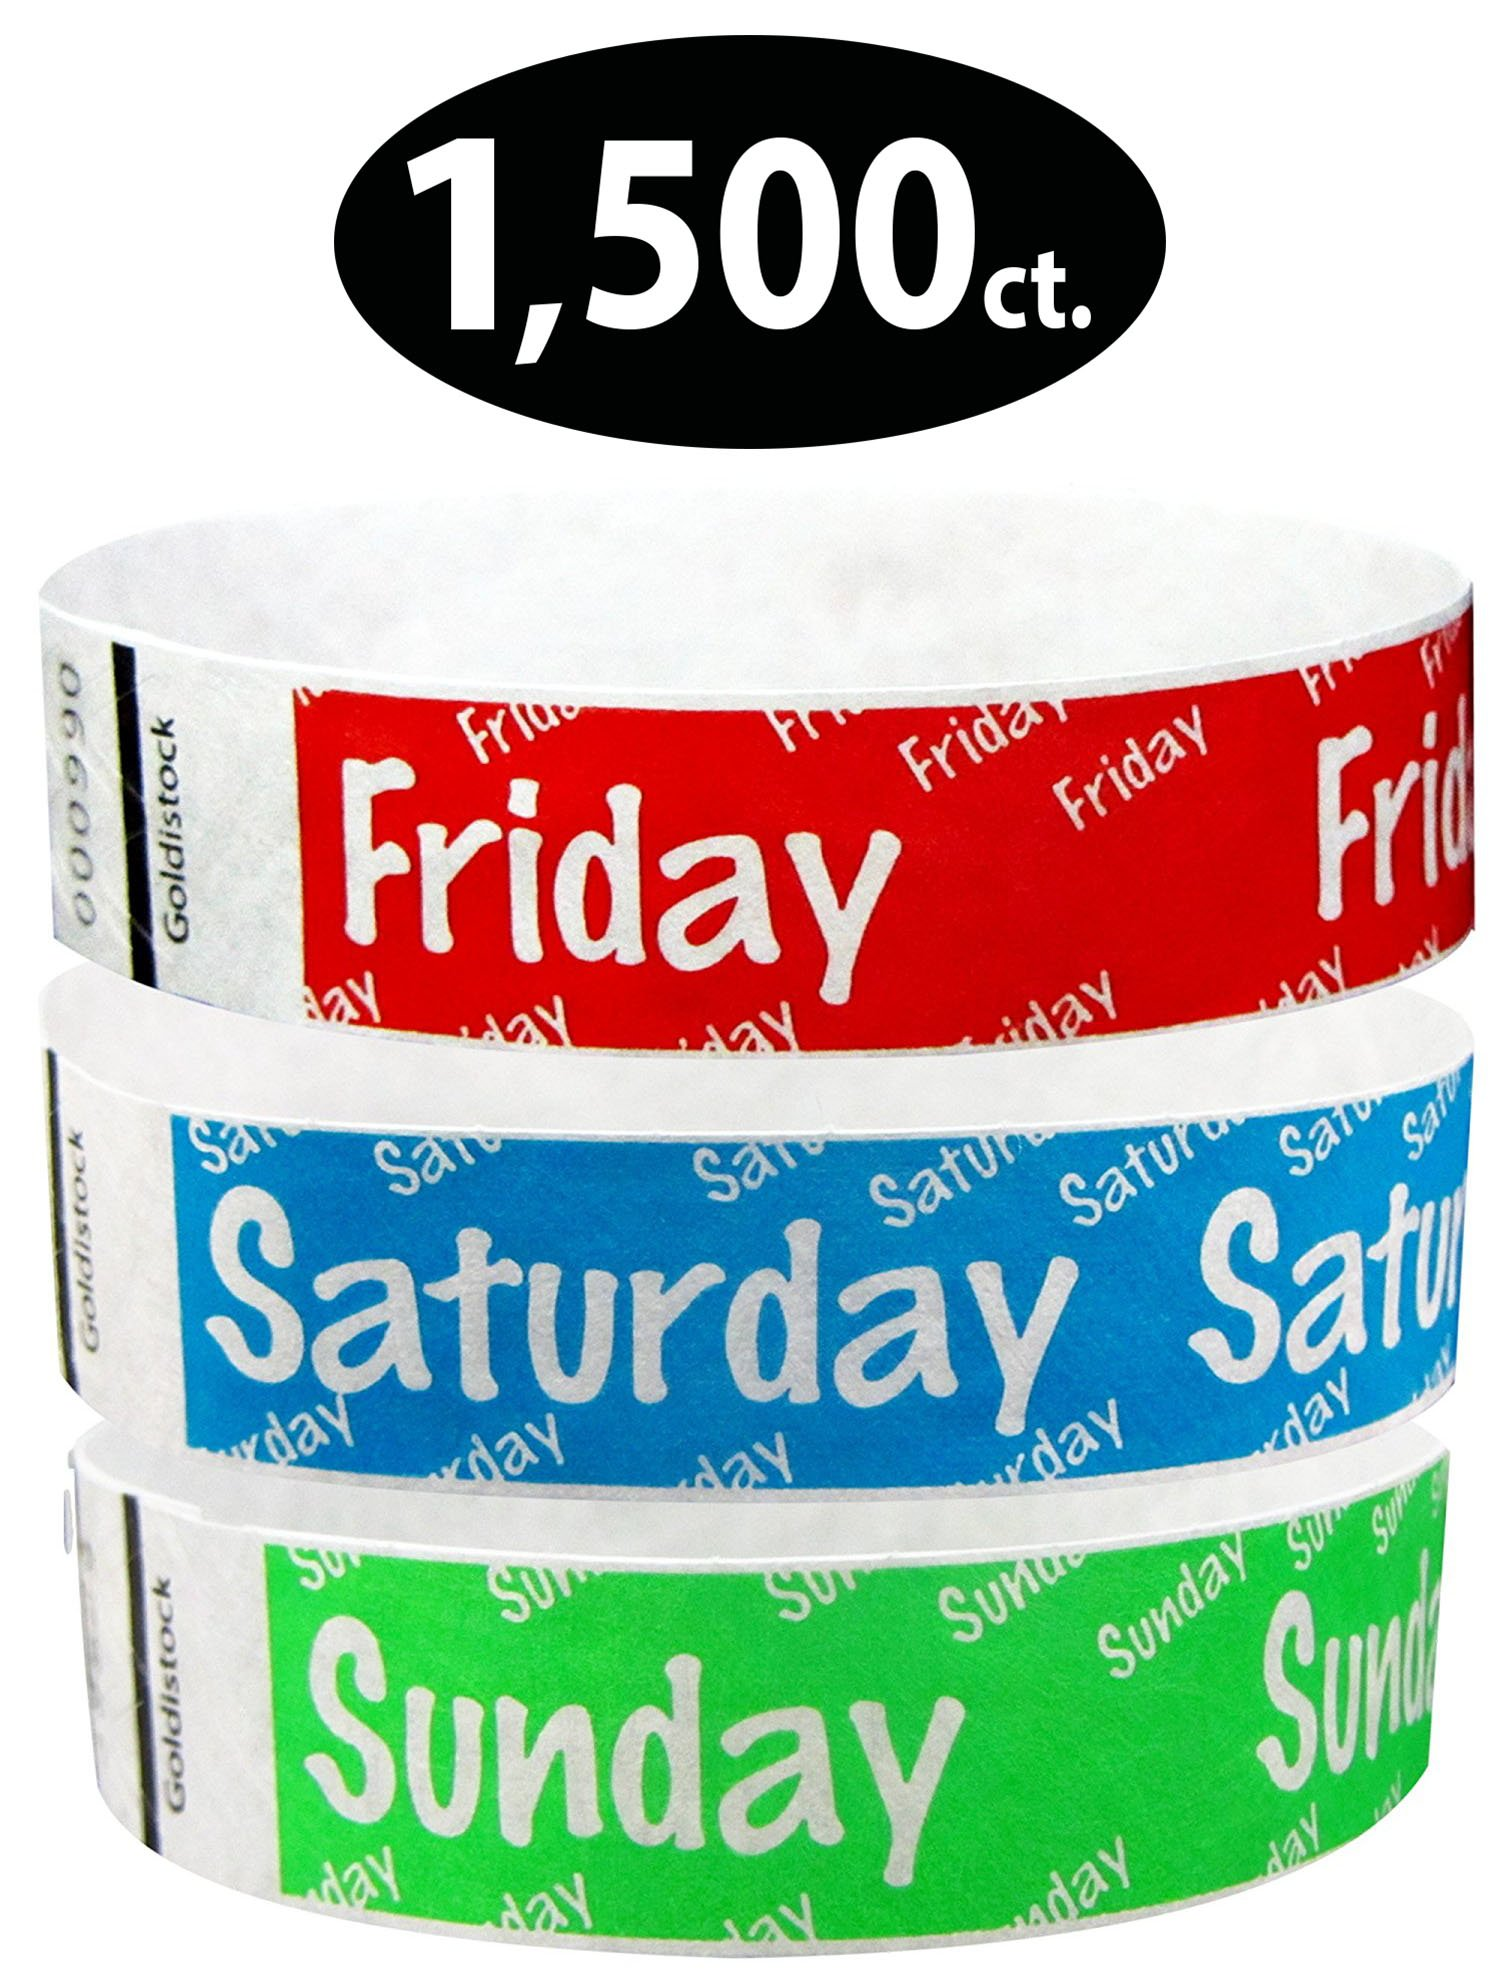 Goldistock 3/4'' Tyvek Wristbands Variety Pack 1,500 Count- Friday (Red), Saturday (Neon Blue), Sunday (Green)